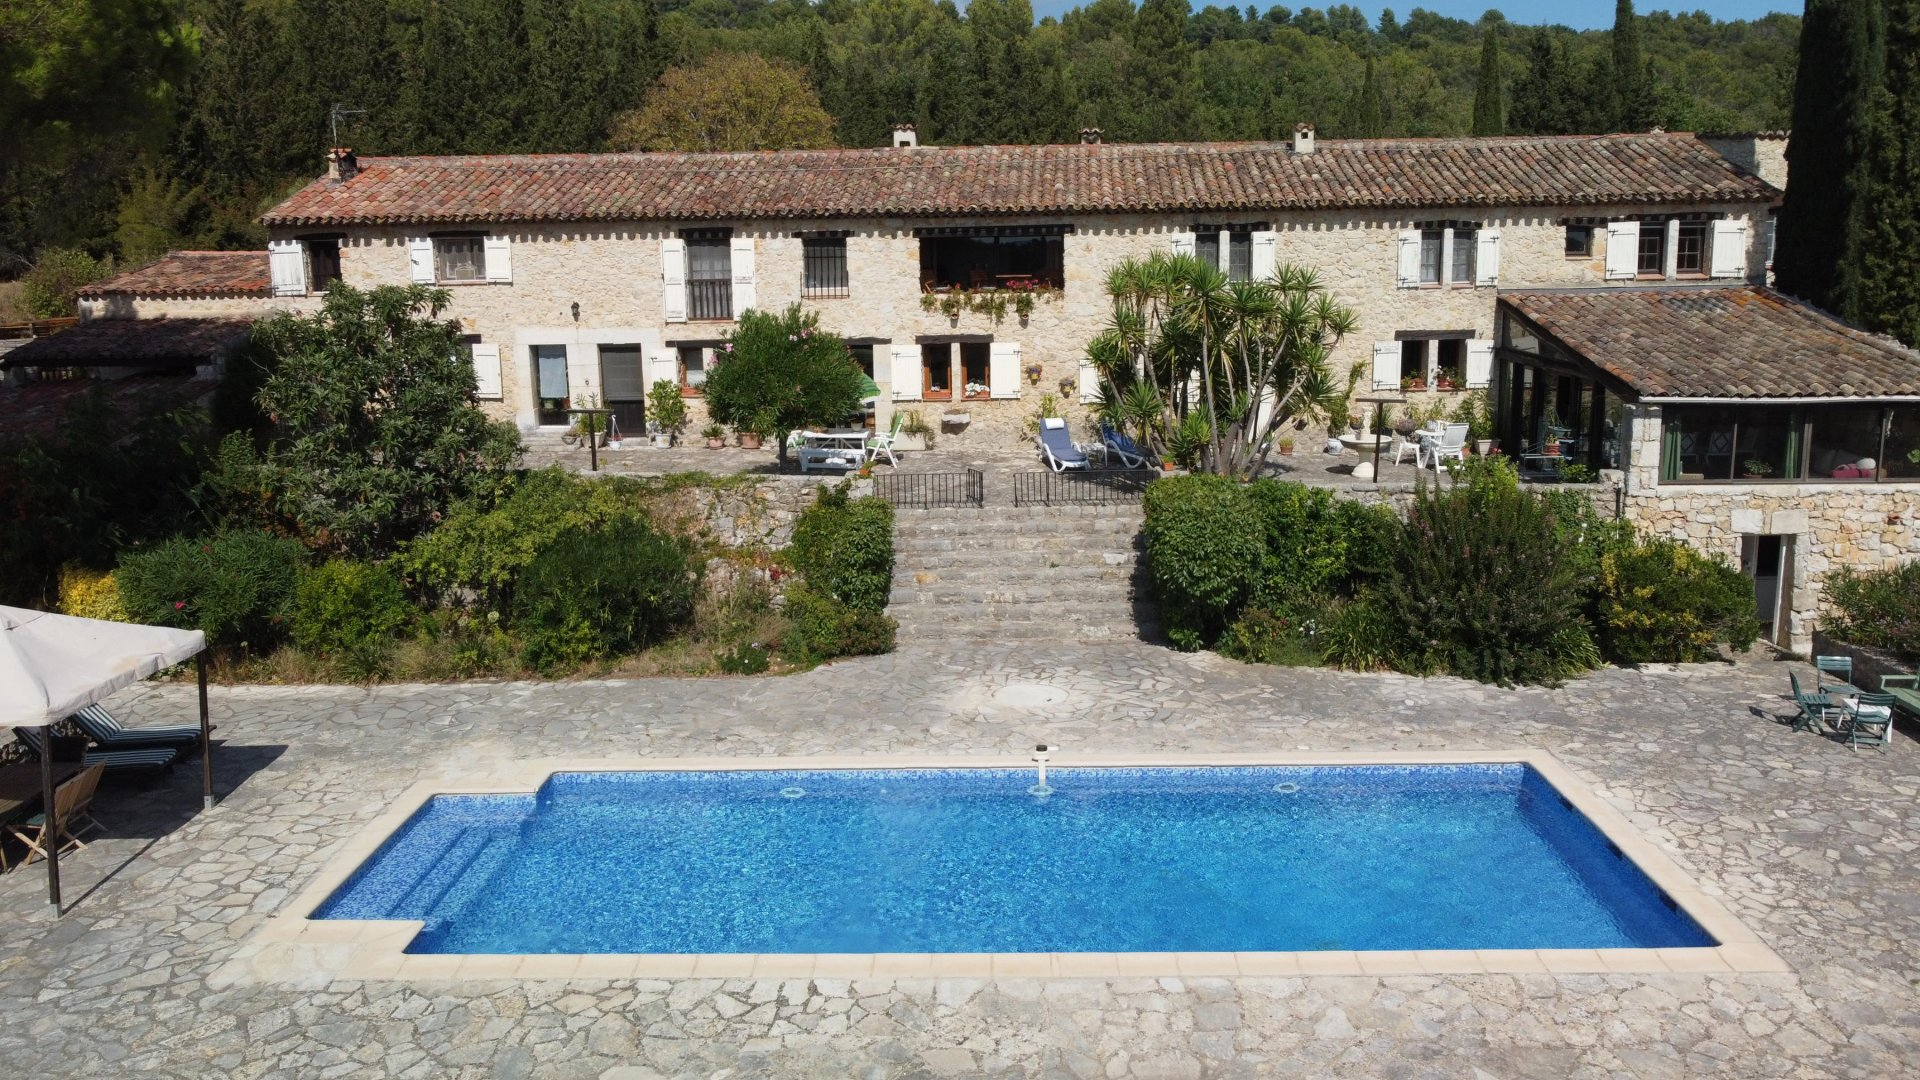 405m² stone property, guest house, pool, garage, on 4.4 hect of flat land in Callian